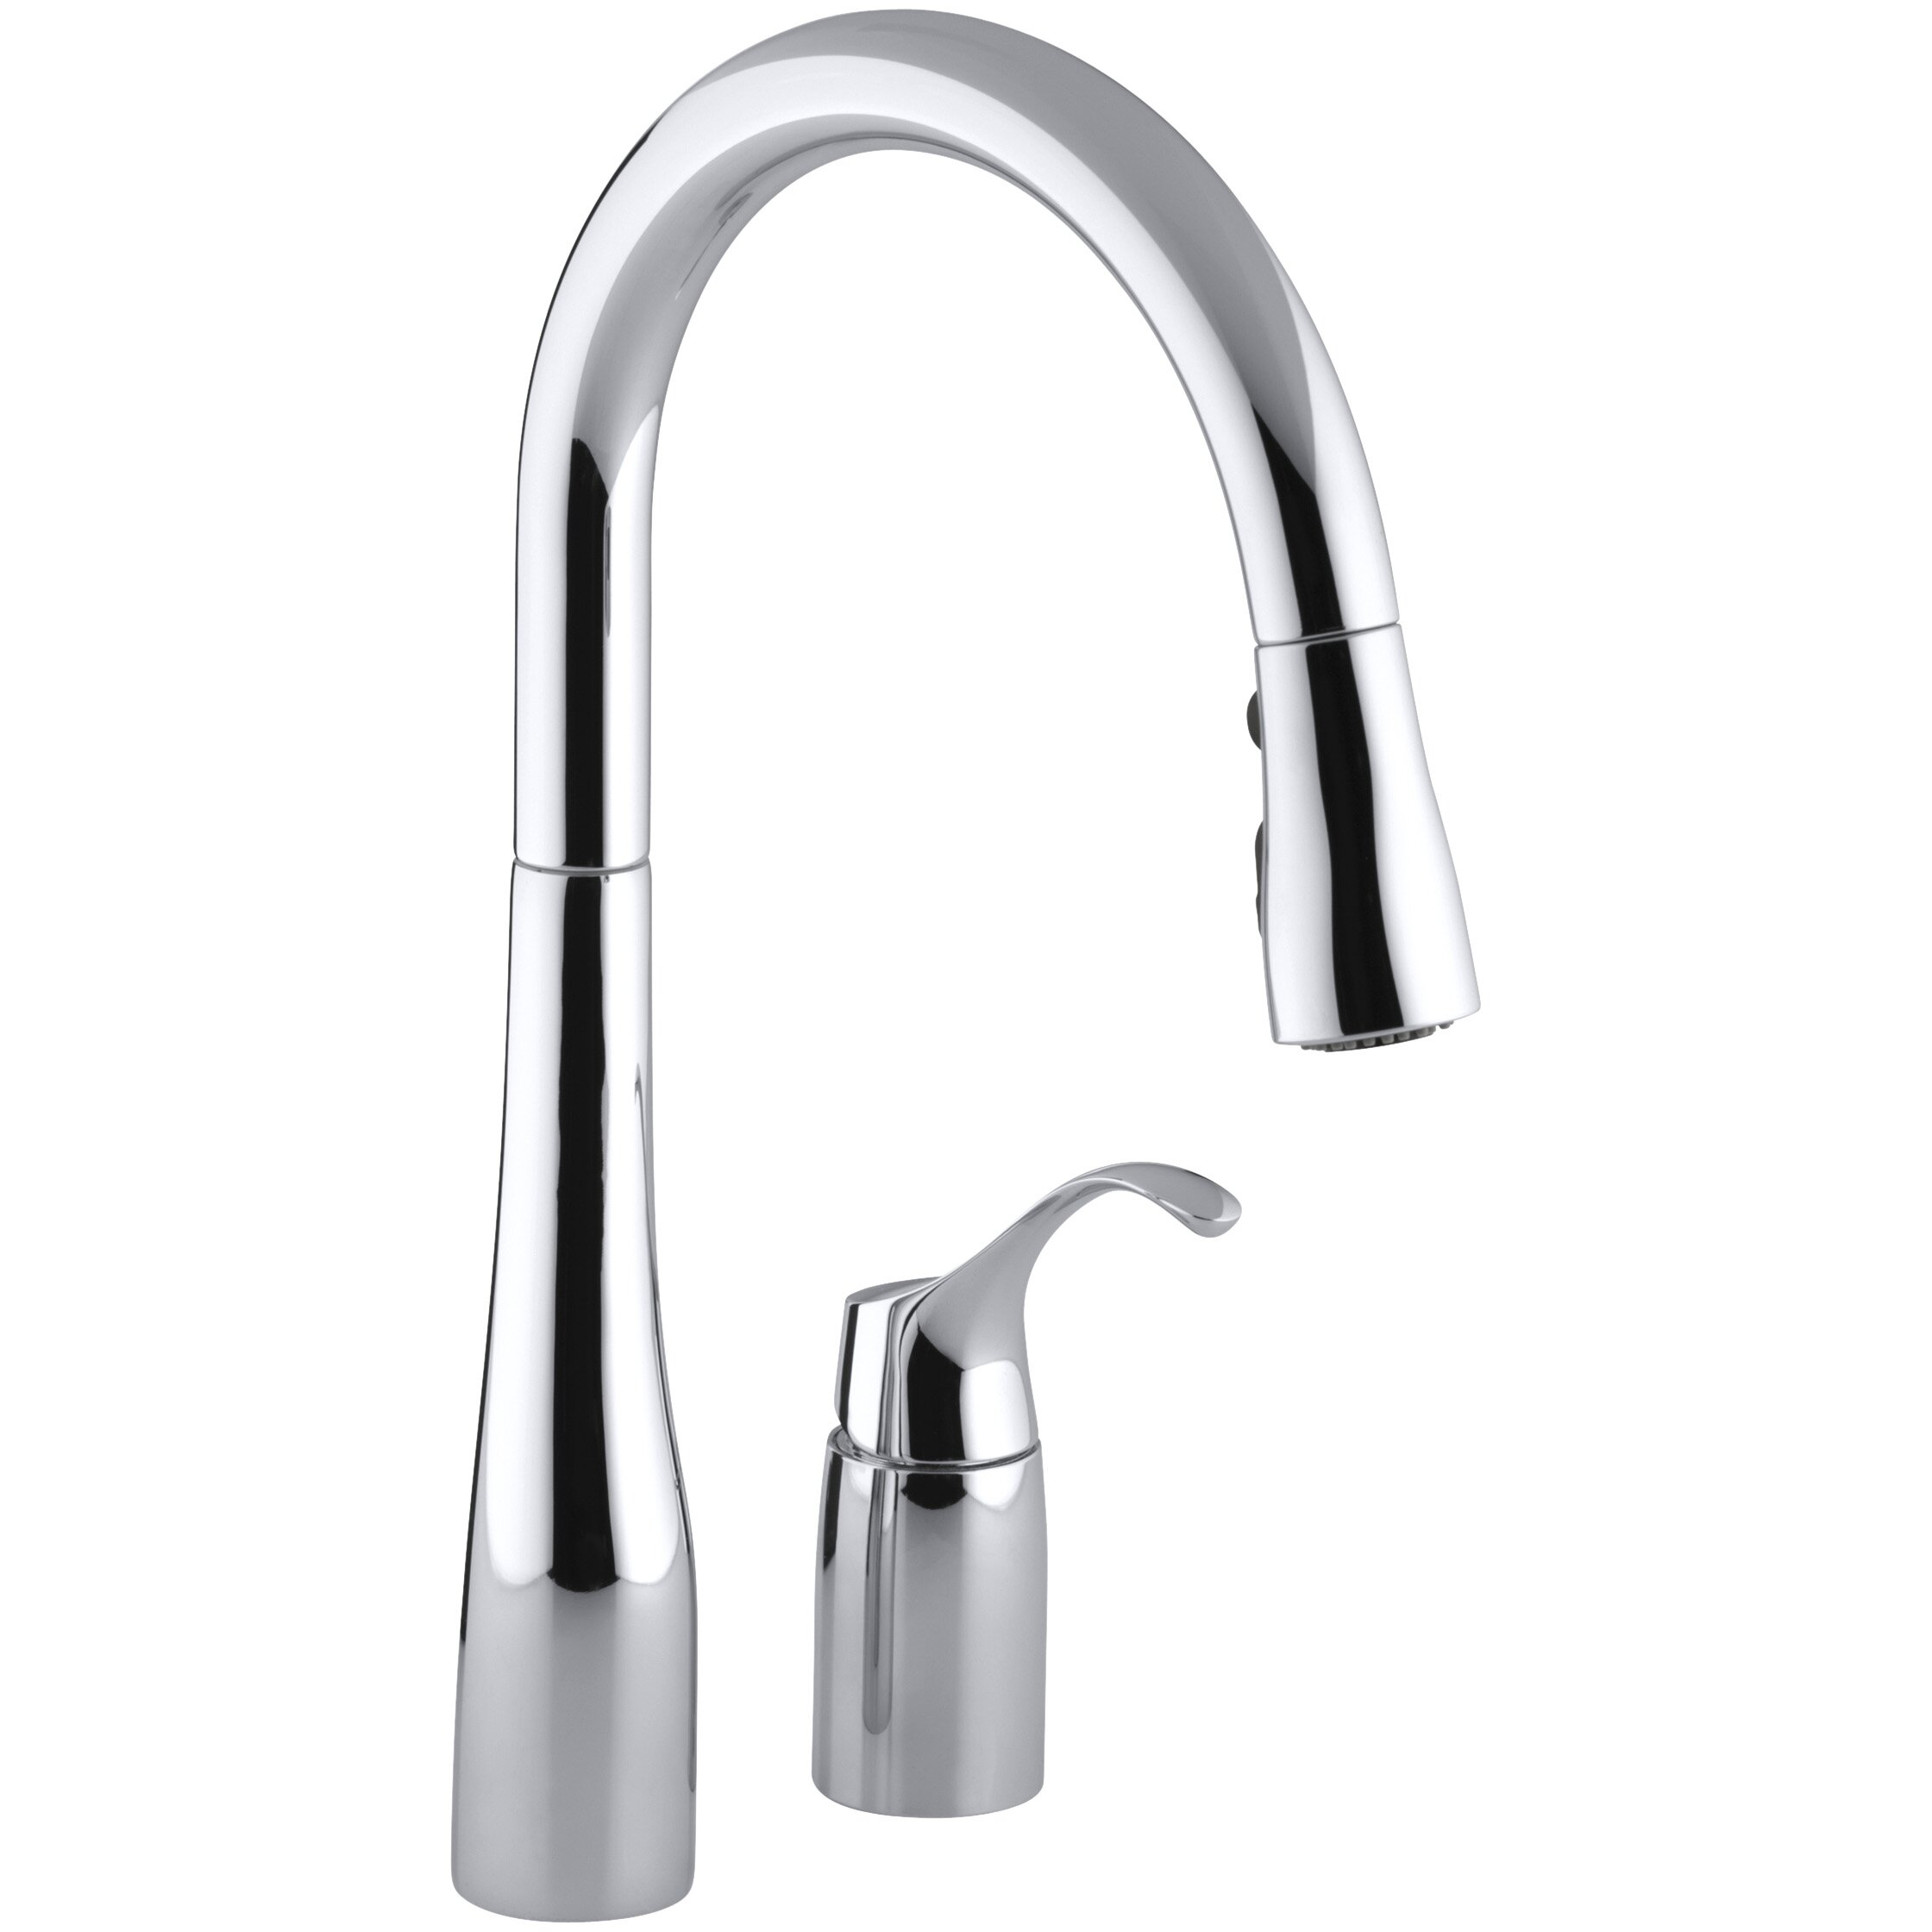 Kitchen Faucets Kohler: Kohler Simplice Two-Hole Kitchen Sink Faucet With 16-1/8